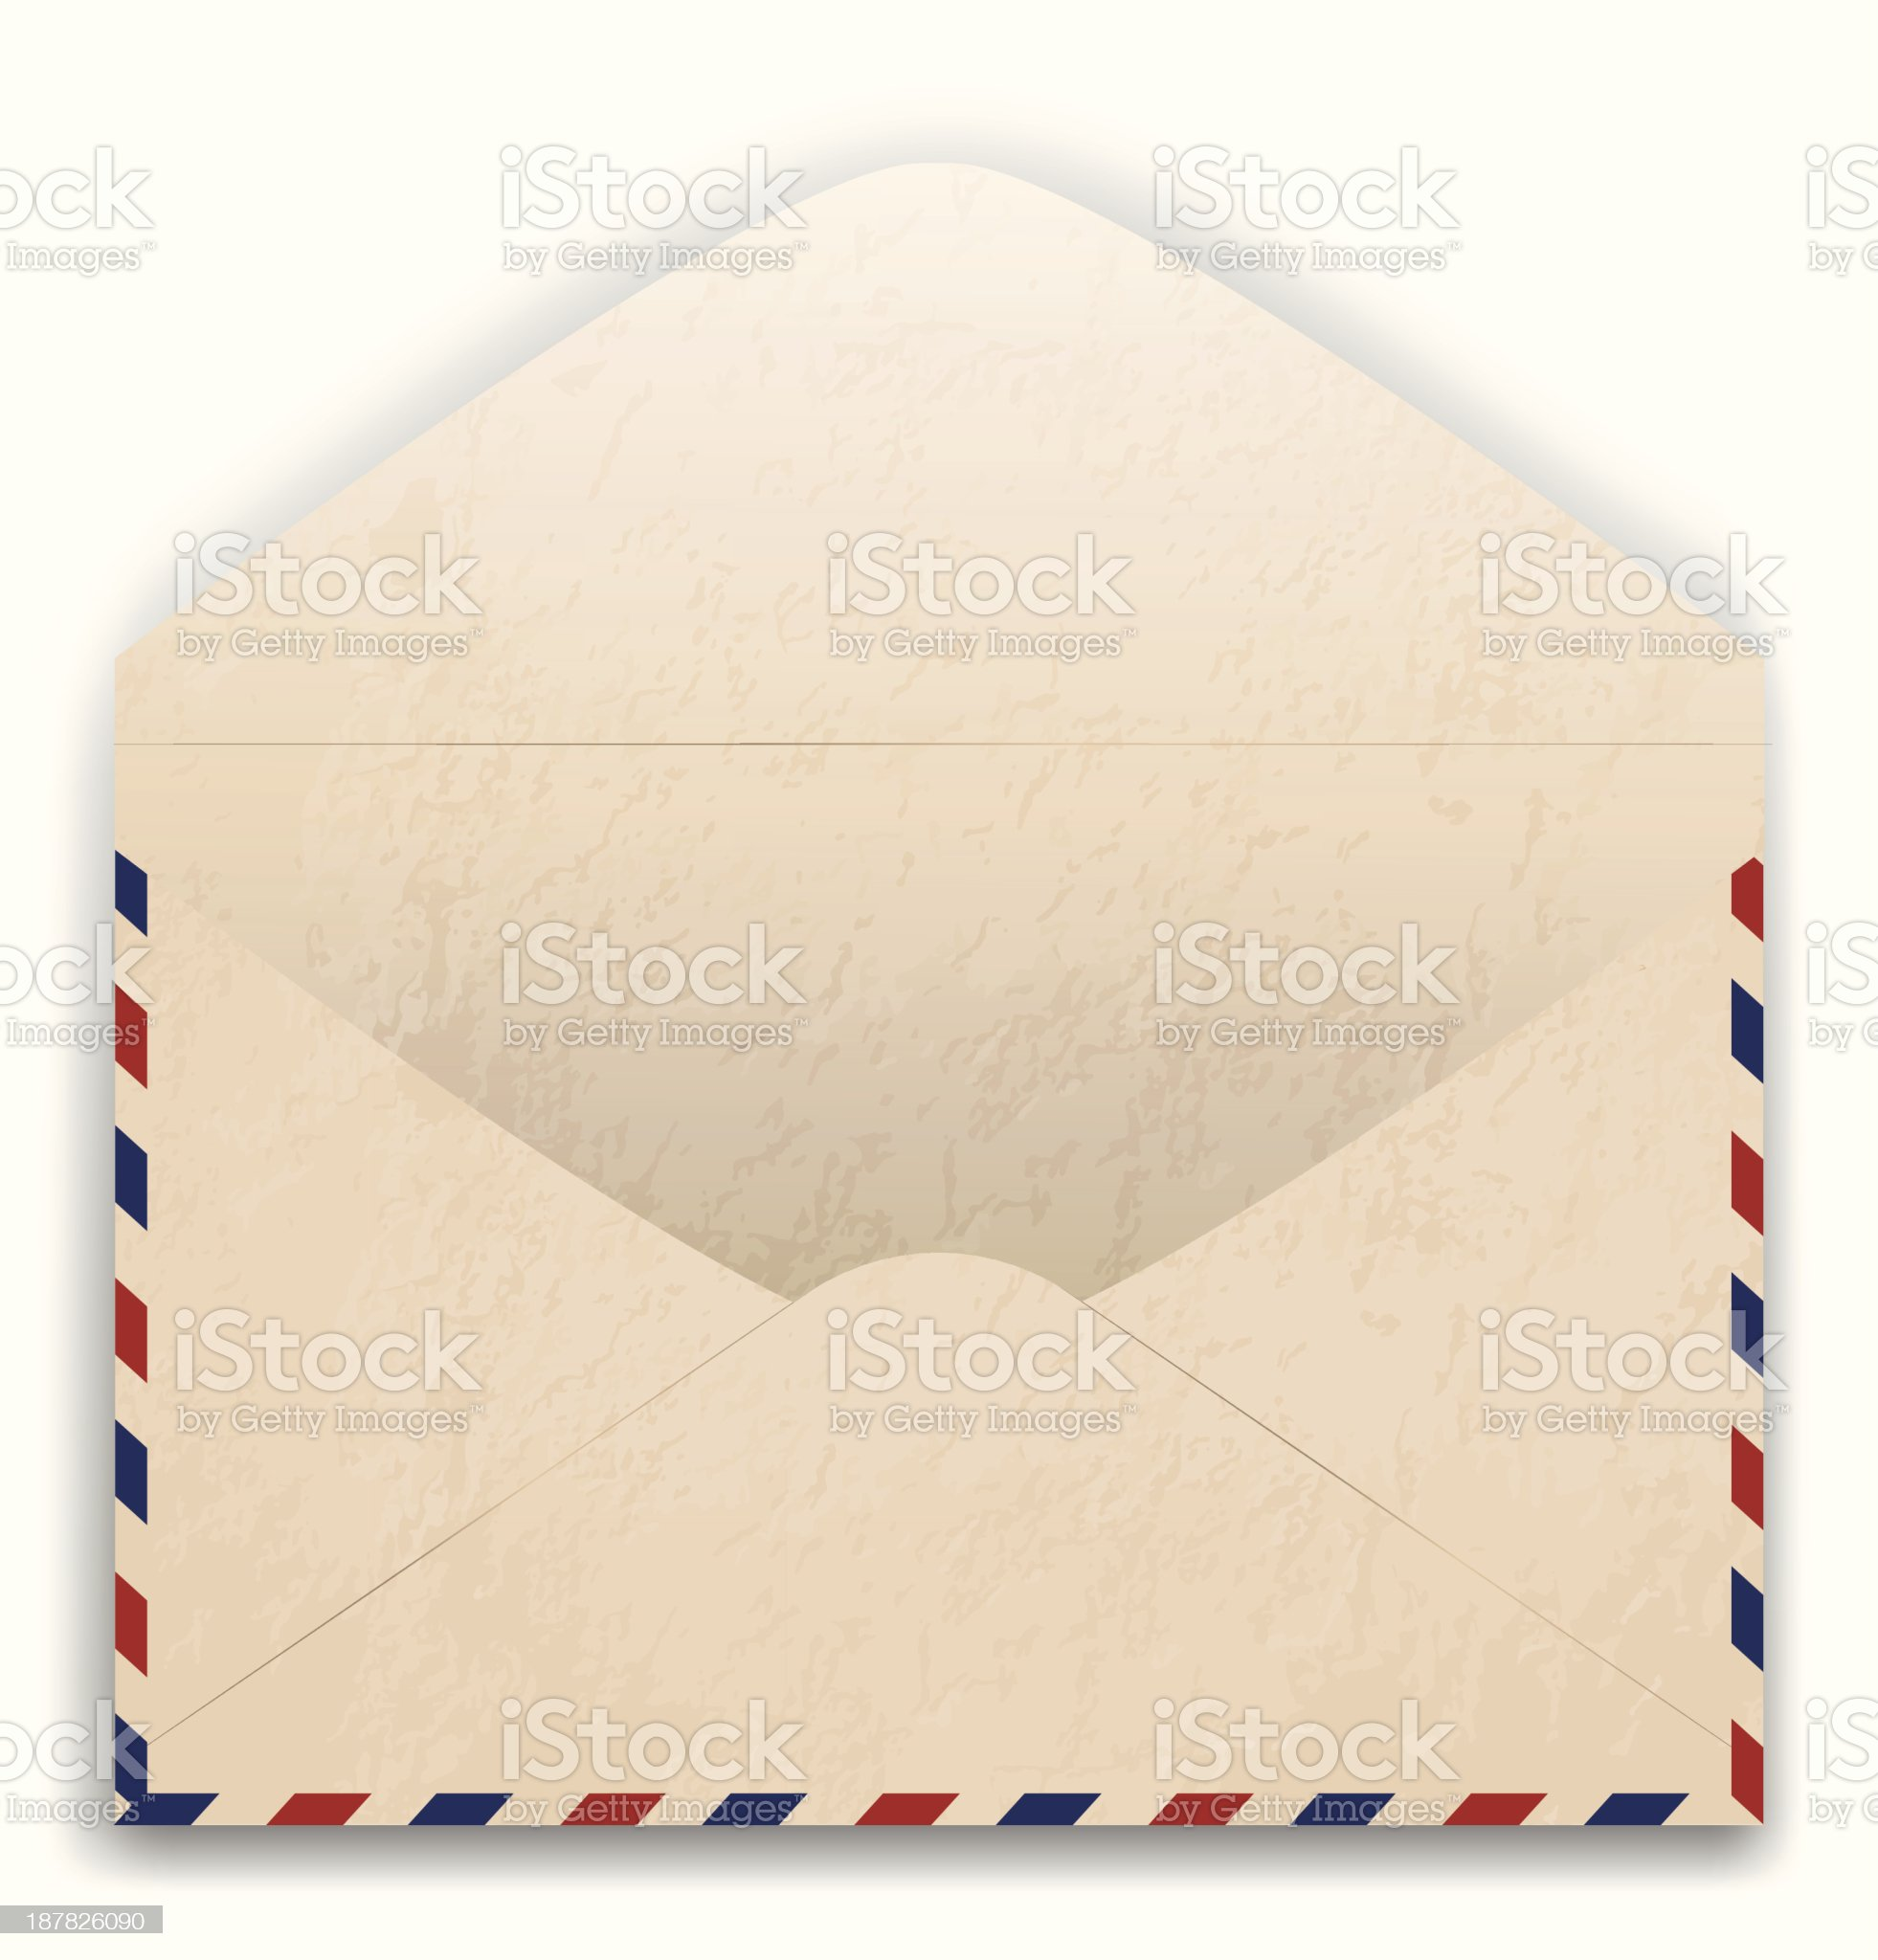 Vector illustration of old post envelope royalty-free stock vector art